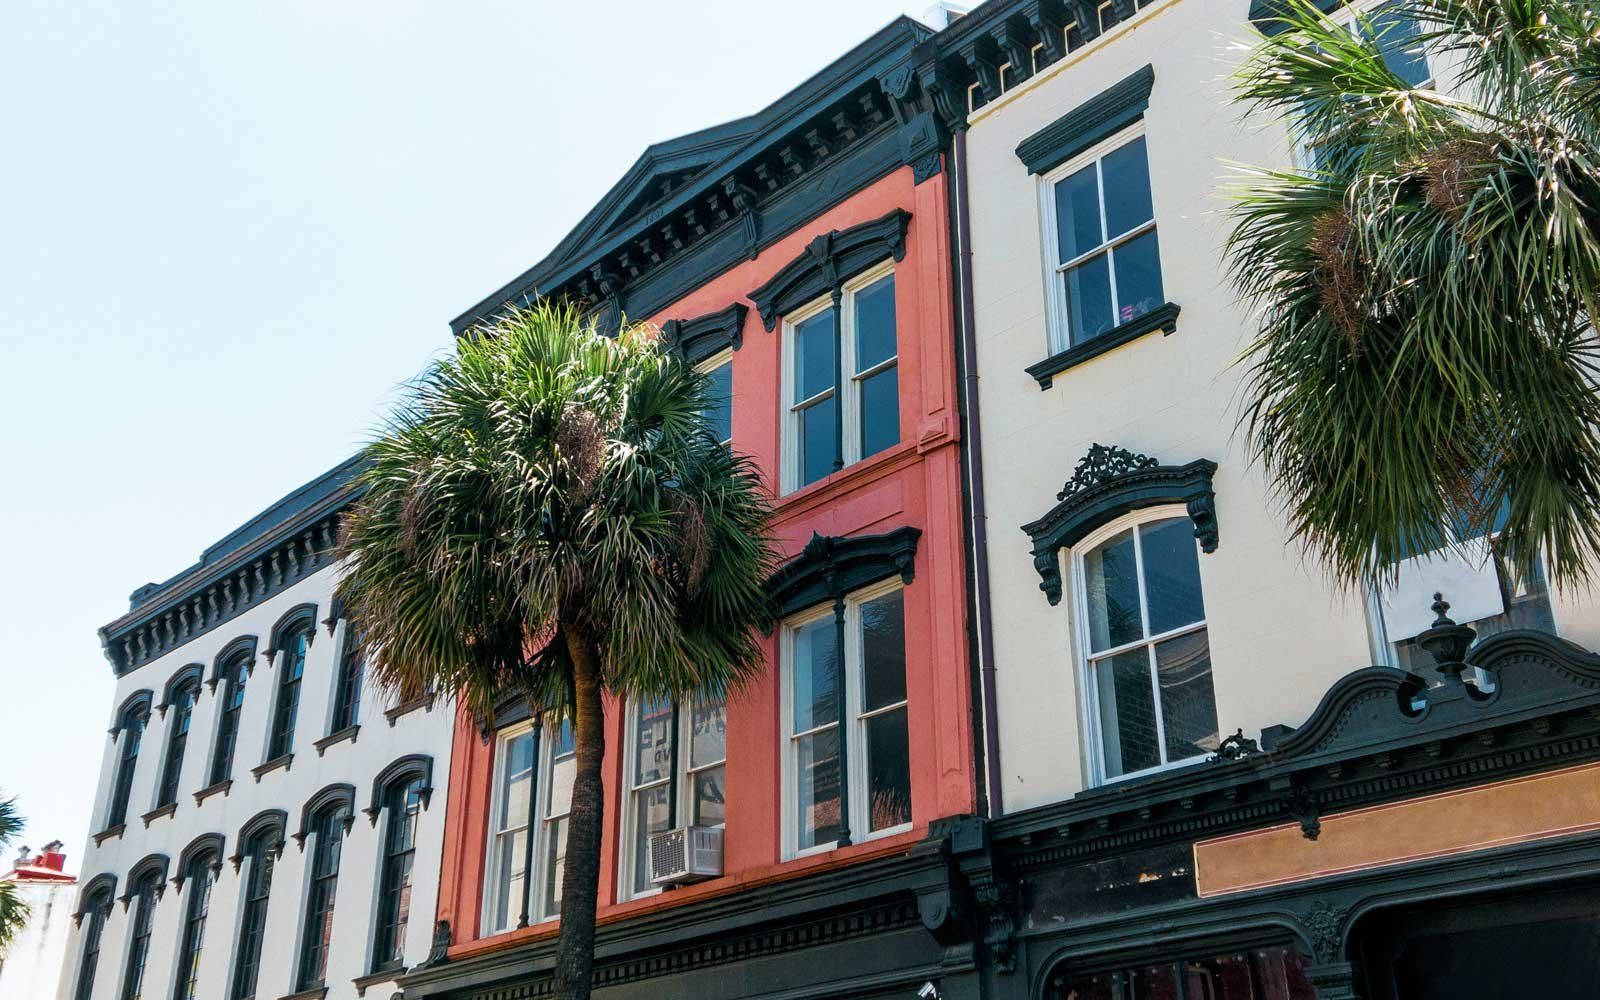 Typical architecture of downtown Savannah, GA with palm trees.